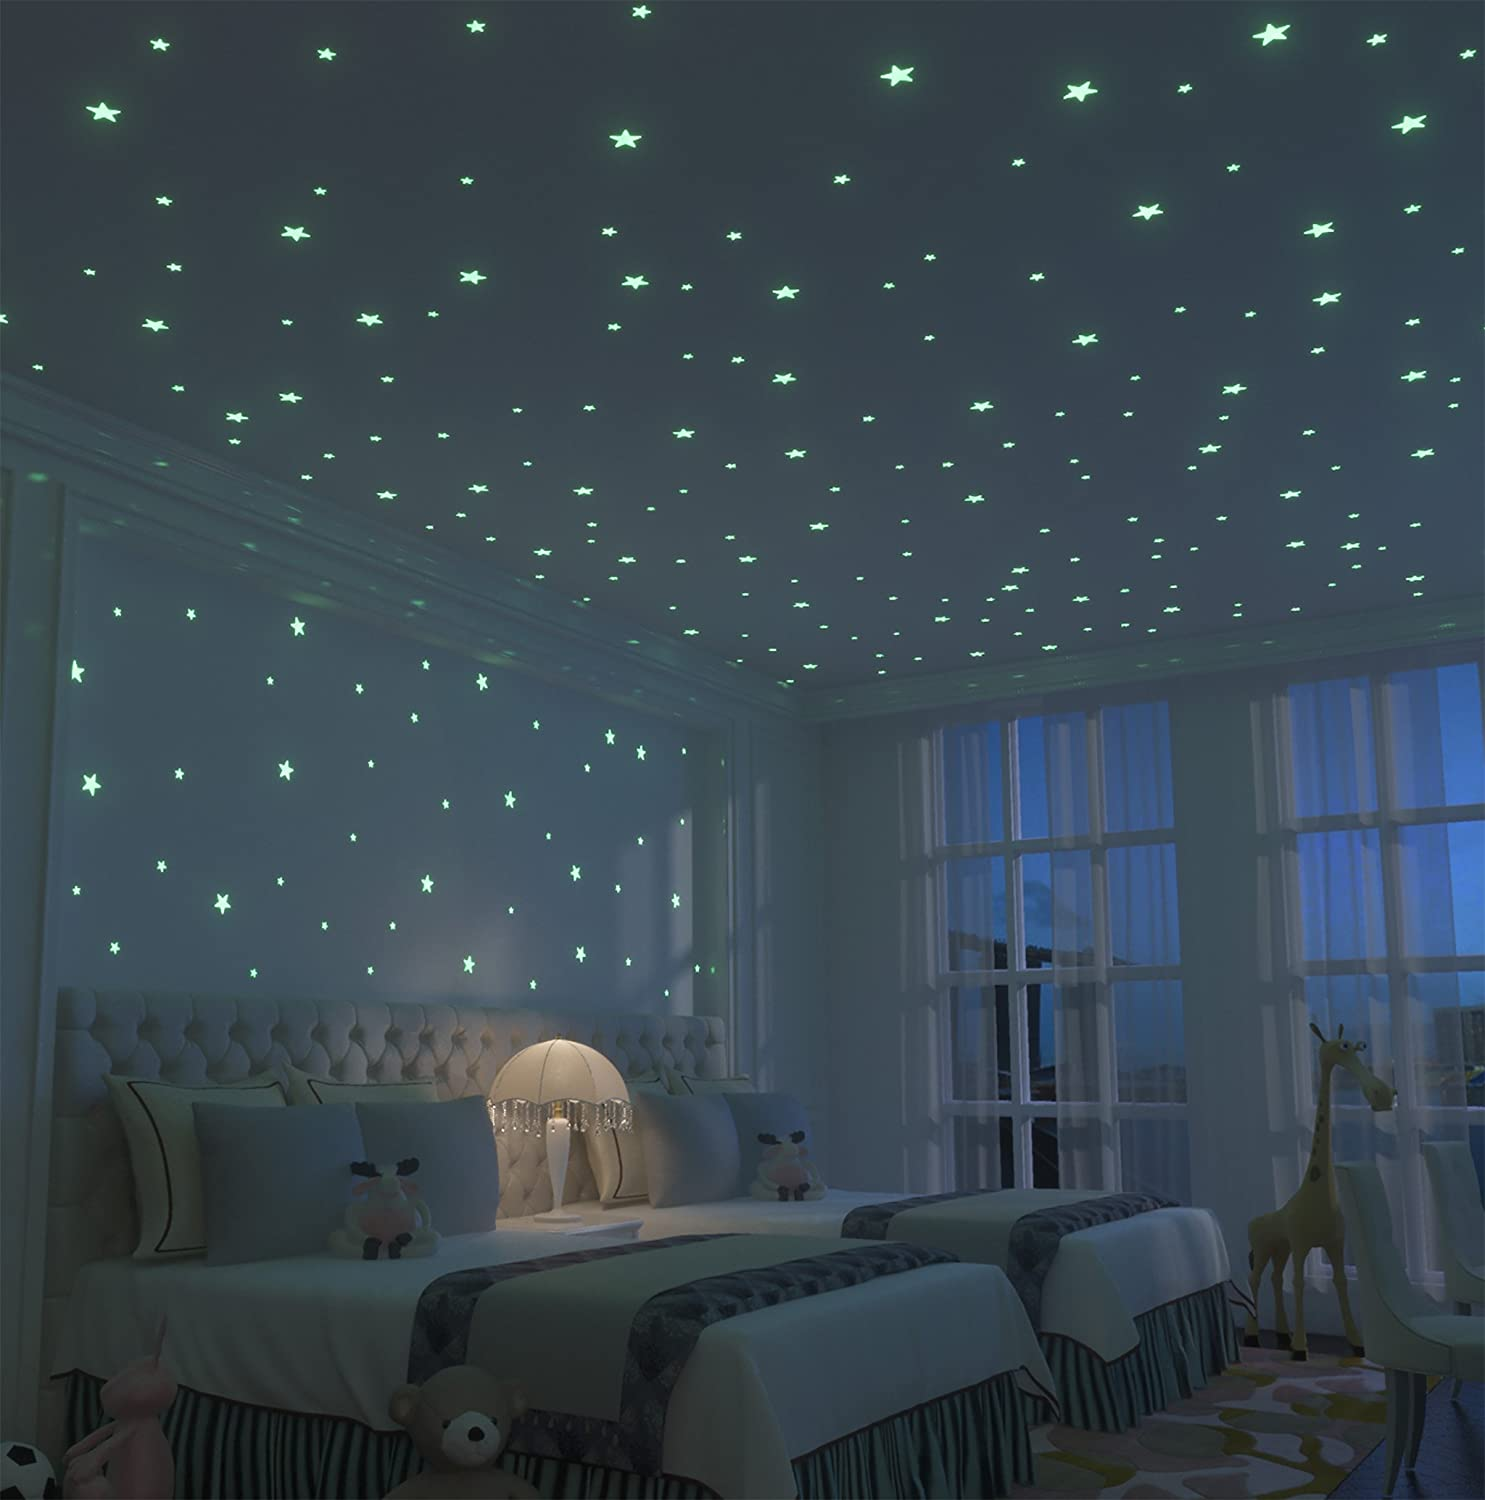 amazon com glow stars supernova 200 of the brightest glow in the amazon com glow stars supernova 200 of the brightest glow in the dark stars boxed set with adhesive putty mesh pouch free constellation guide 3